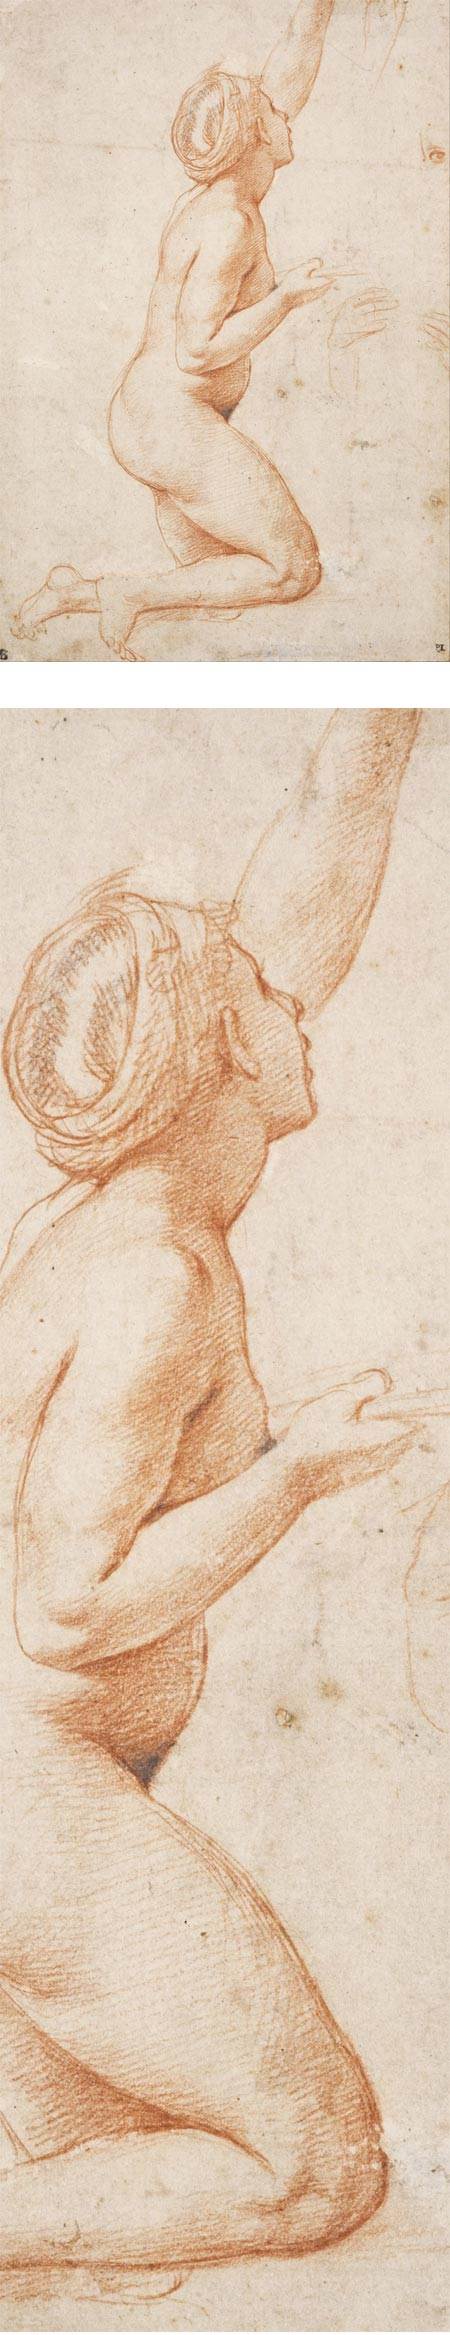 Kneeling Woman with her Left Arm Raised, Raphael (Raffaello Santi), drawing in red chalk